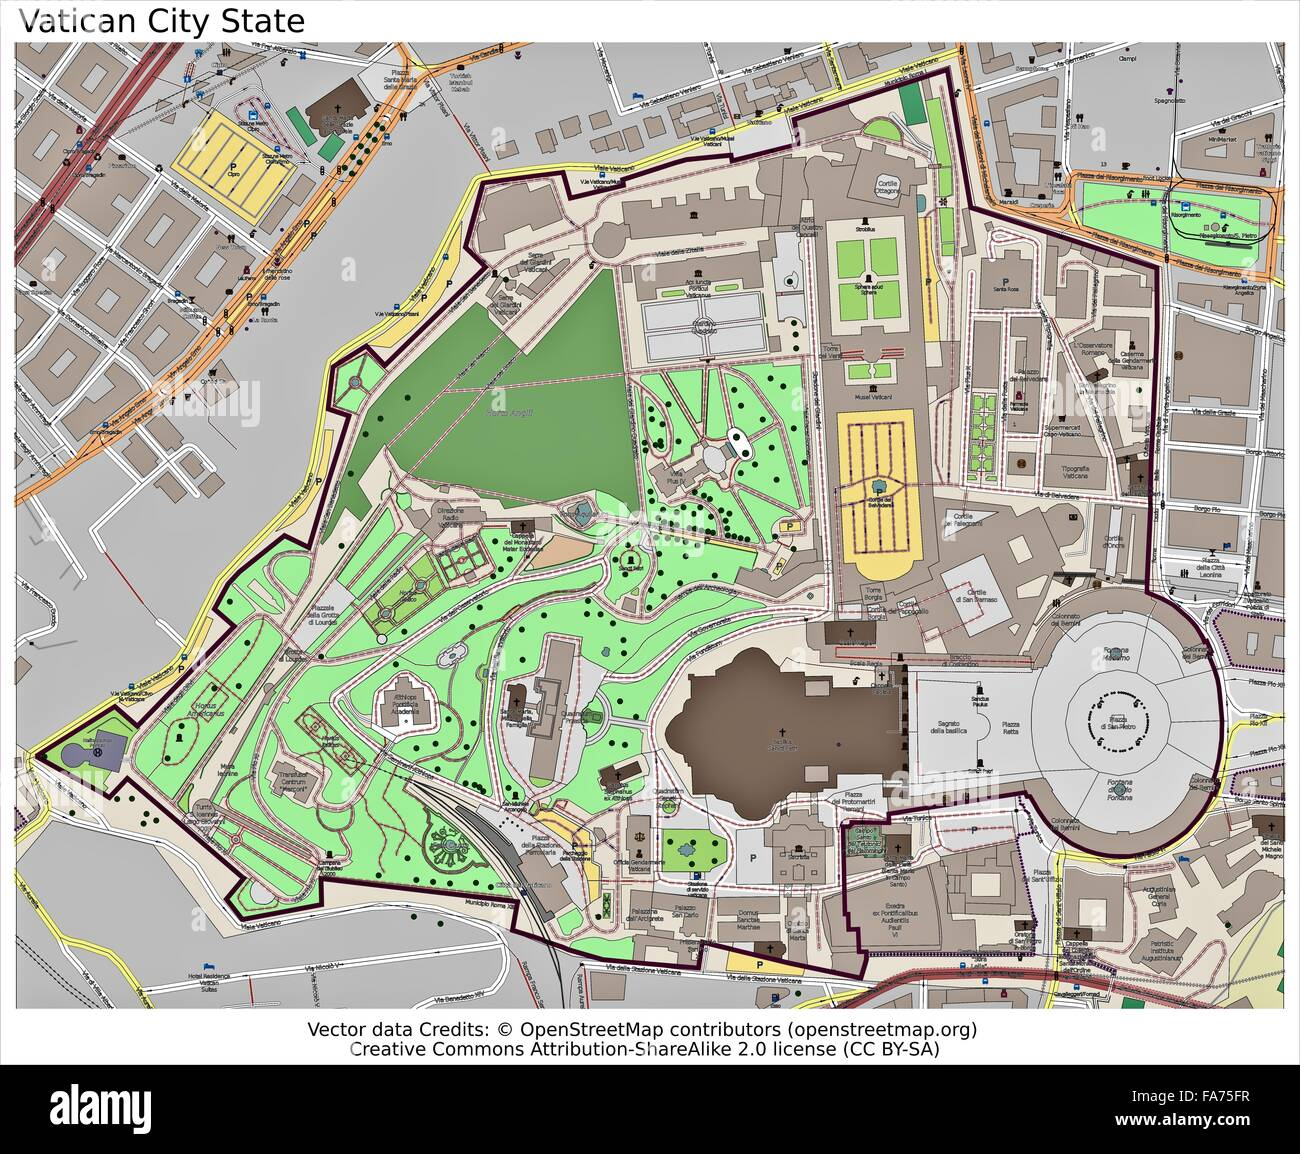 Vatican City State location map Stock Photo: 92356427 - Alamy